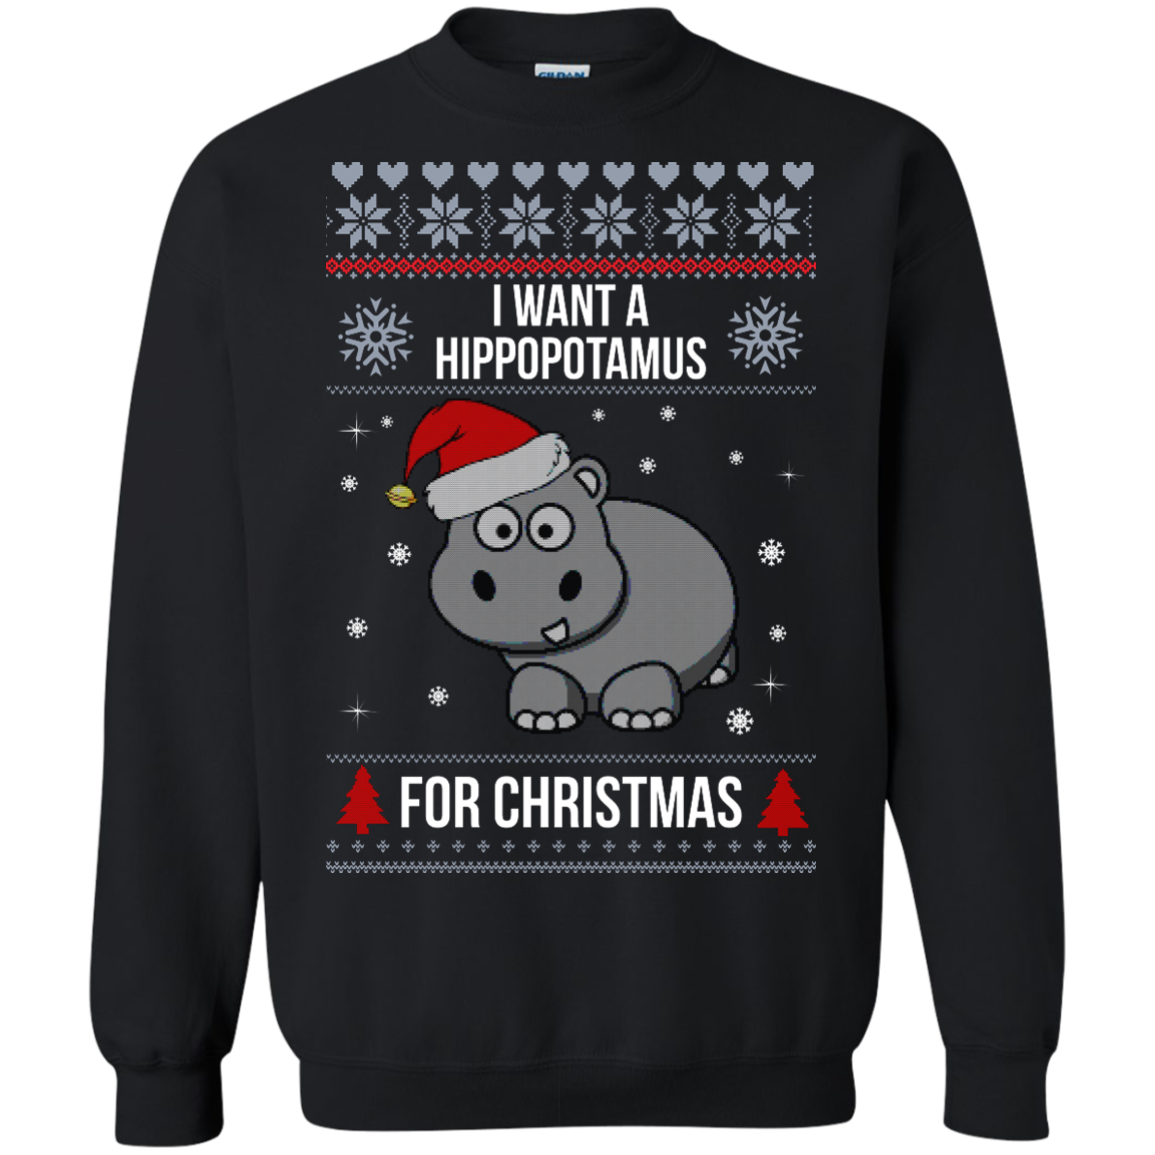 Hippopotamus Christmas Sweater I Want A Hippopotamus For Christmas